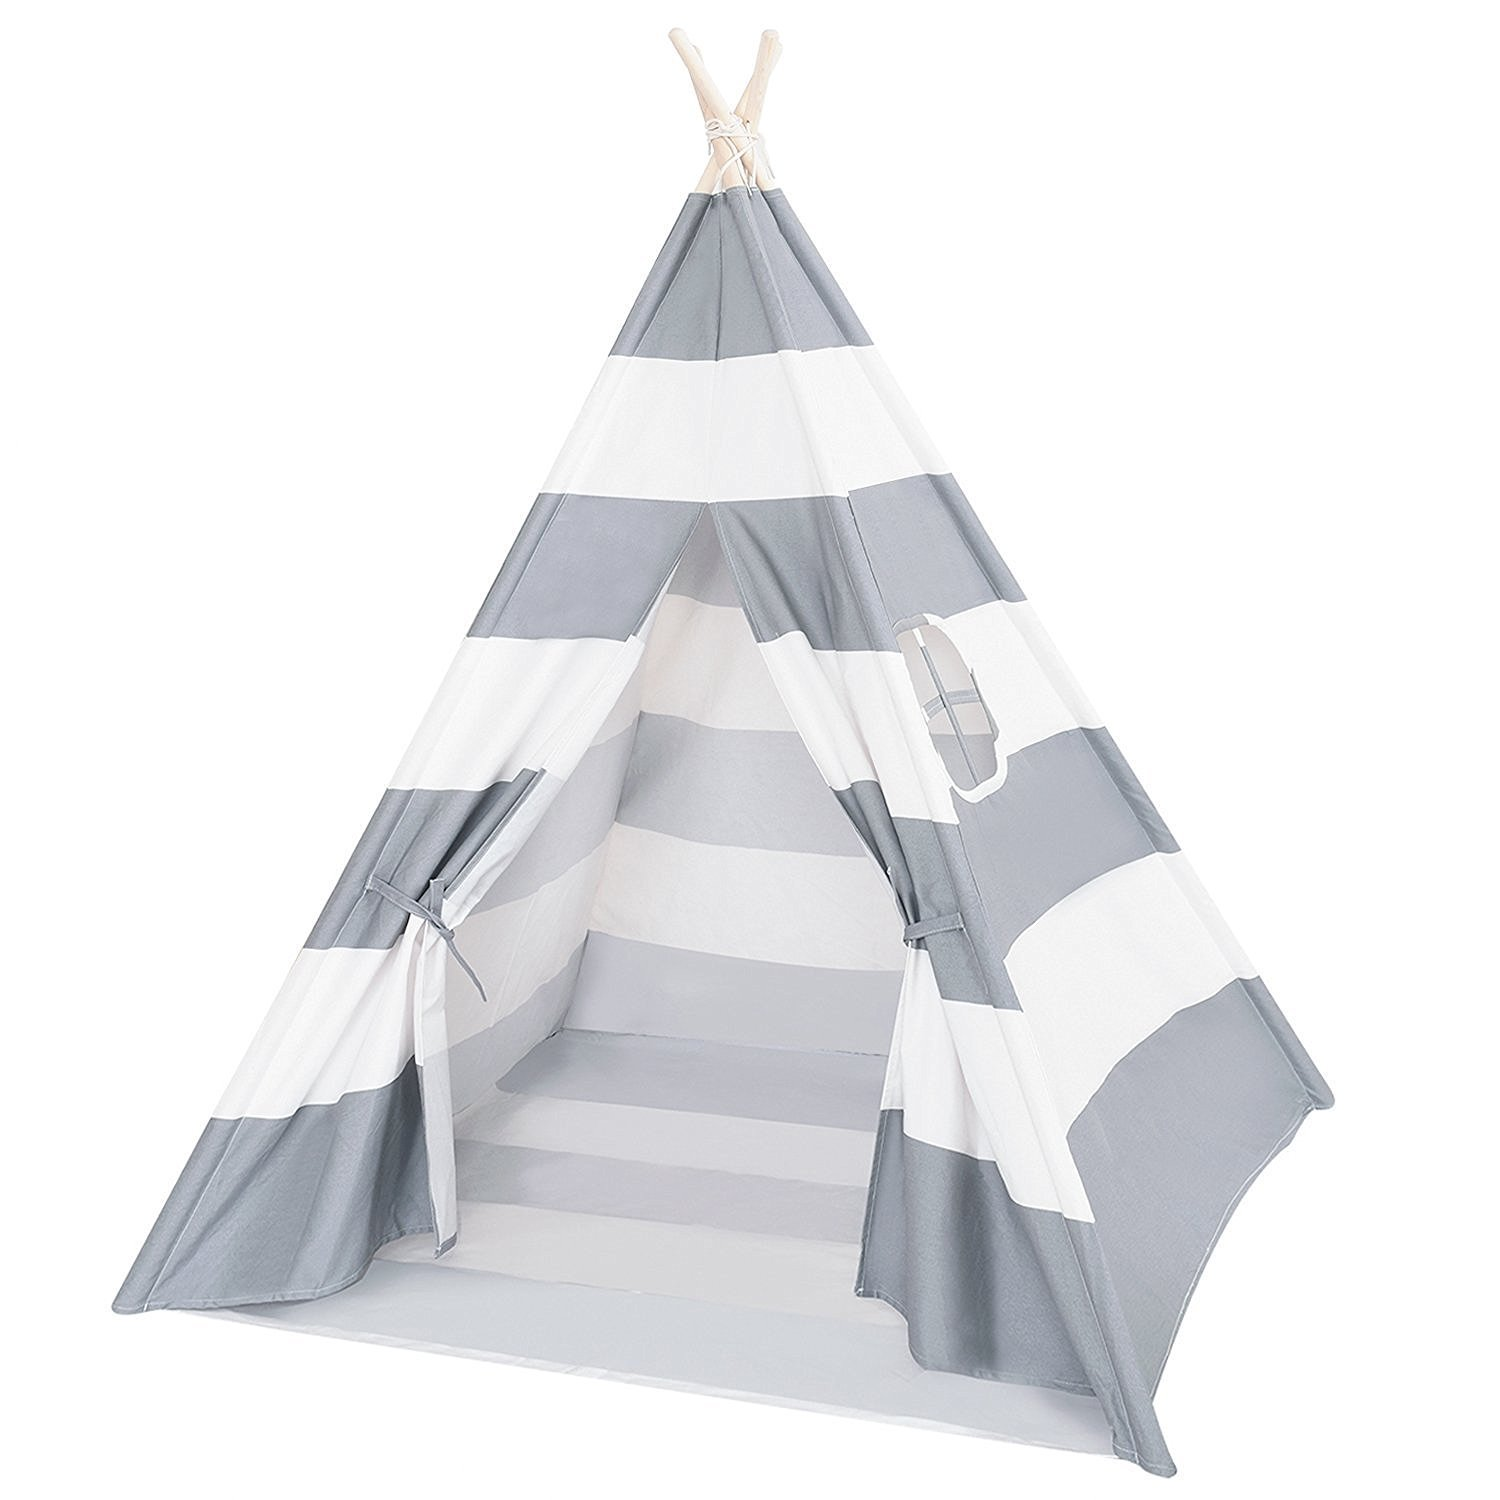 Indoor Outdoor Gestreifte Leinwand Indian Kids Teepee Playhouse mit Fenster und Unten (Grau)